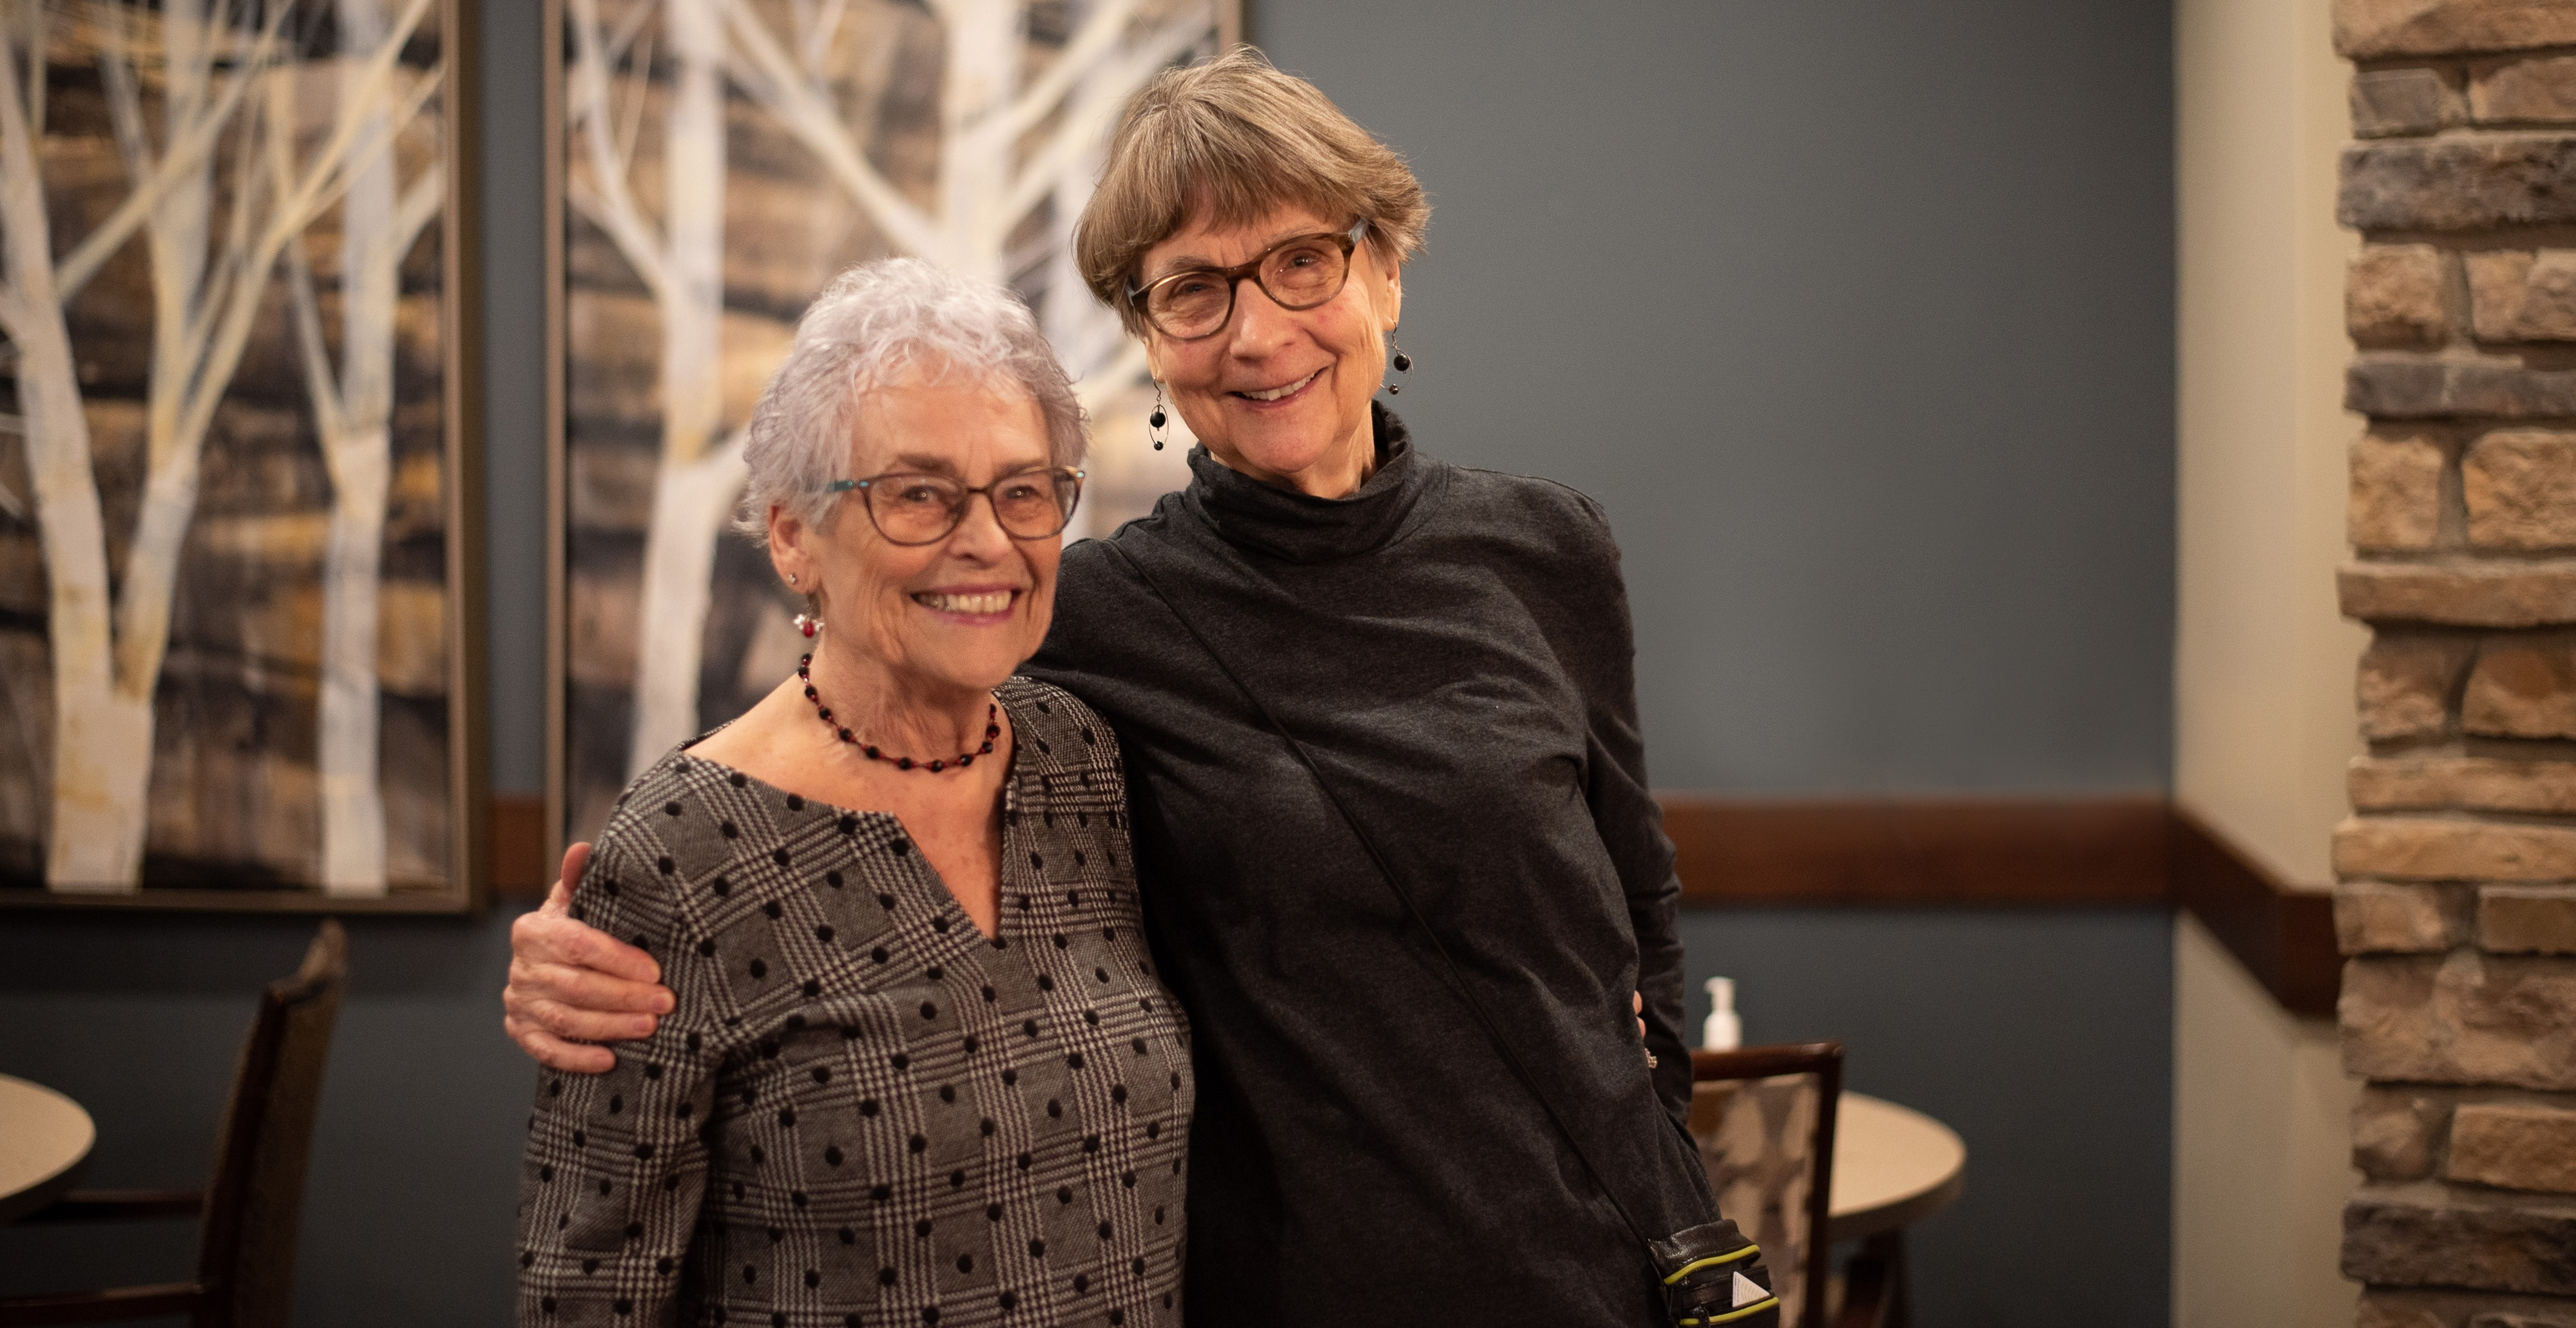 Nursing school neighbors: Jo and Evelyn reflect on years of life and work, offering advice